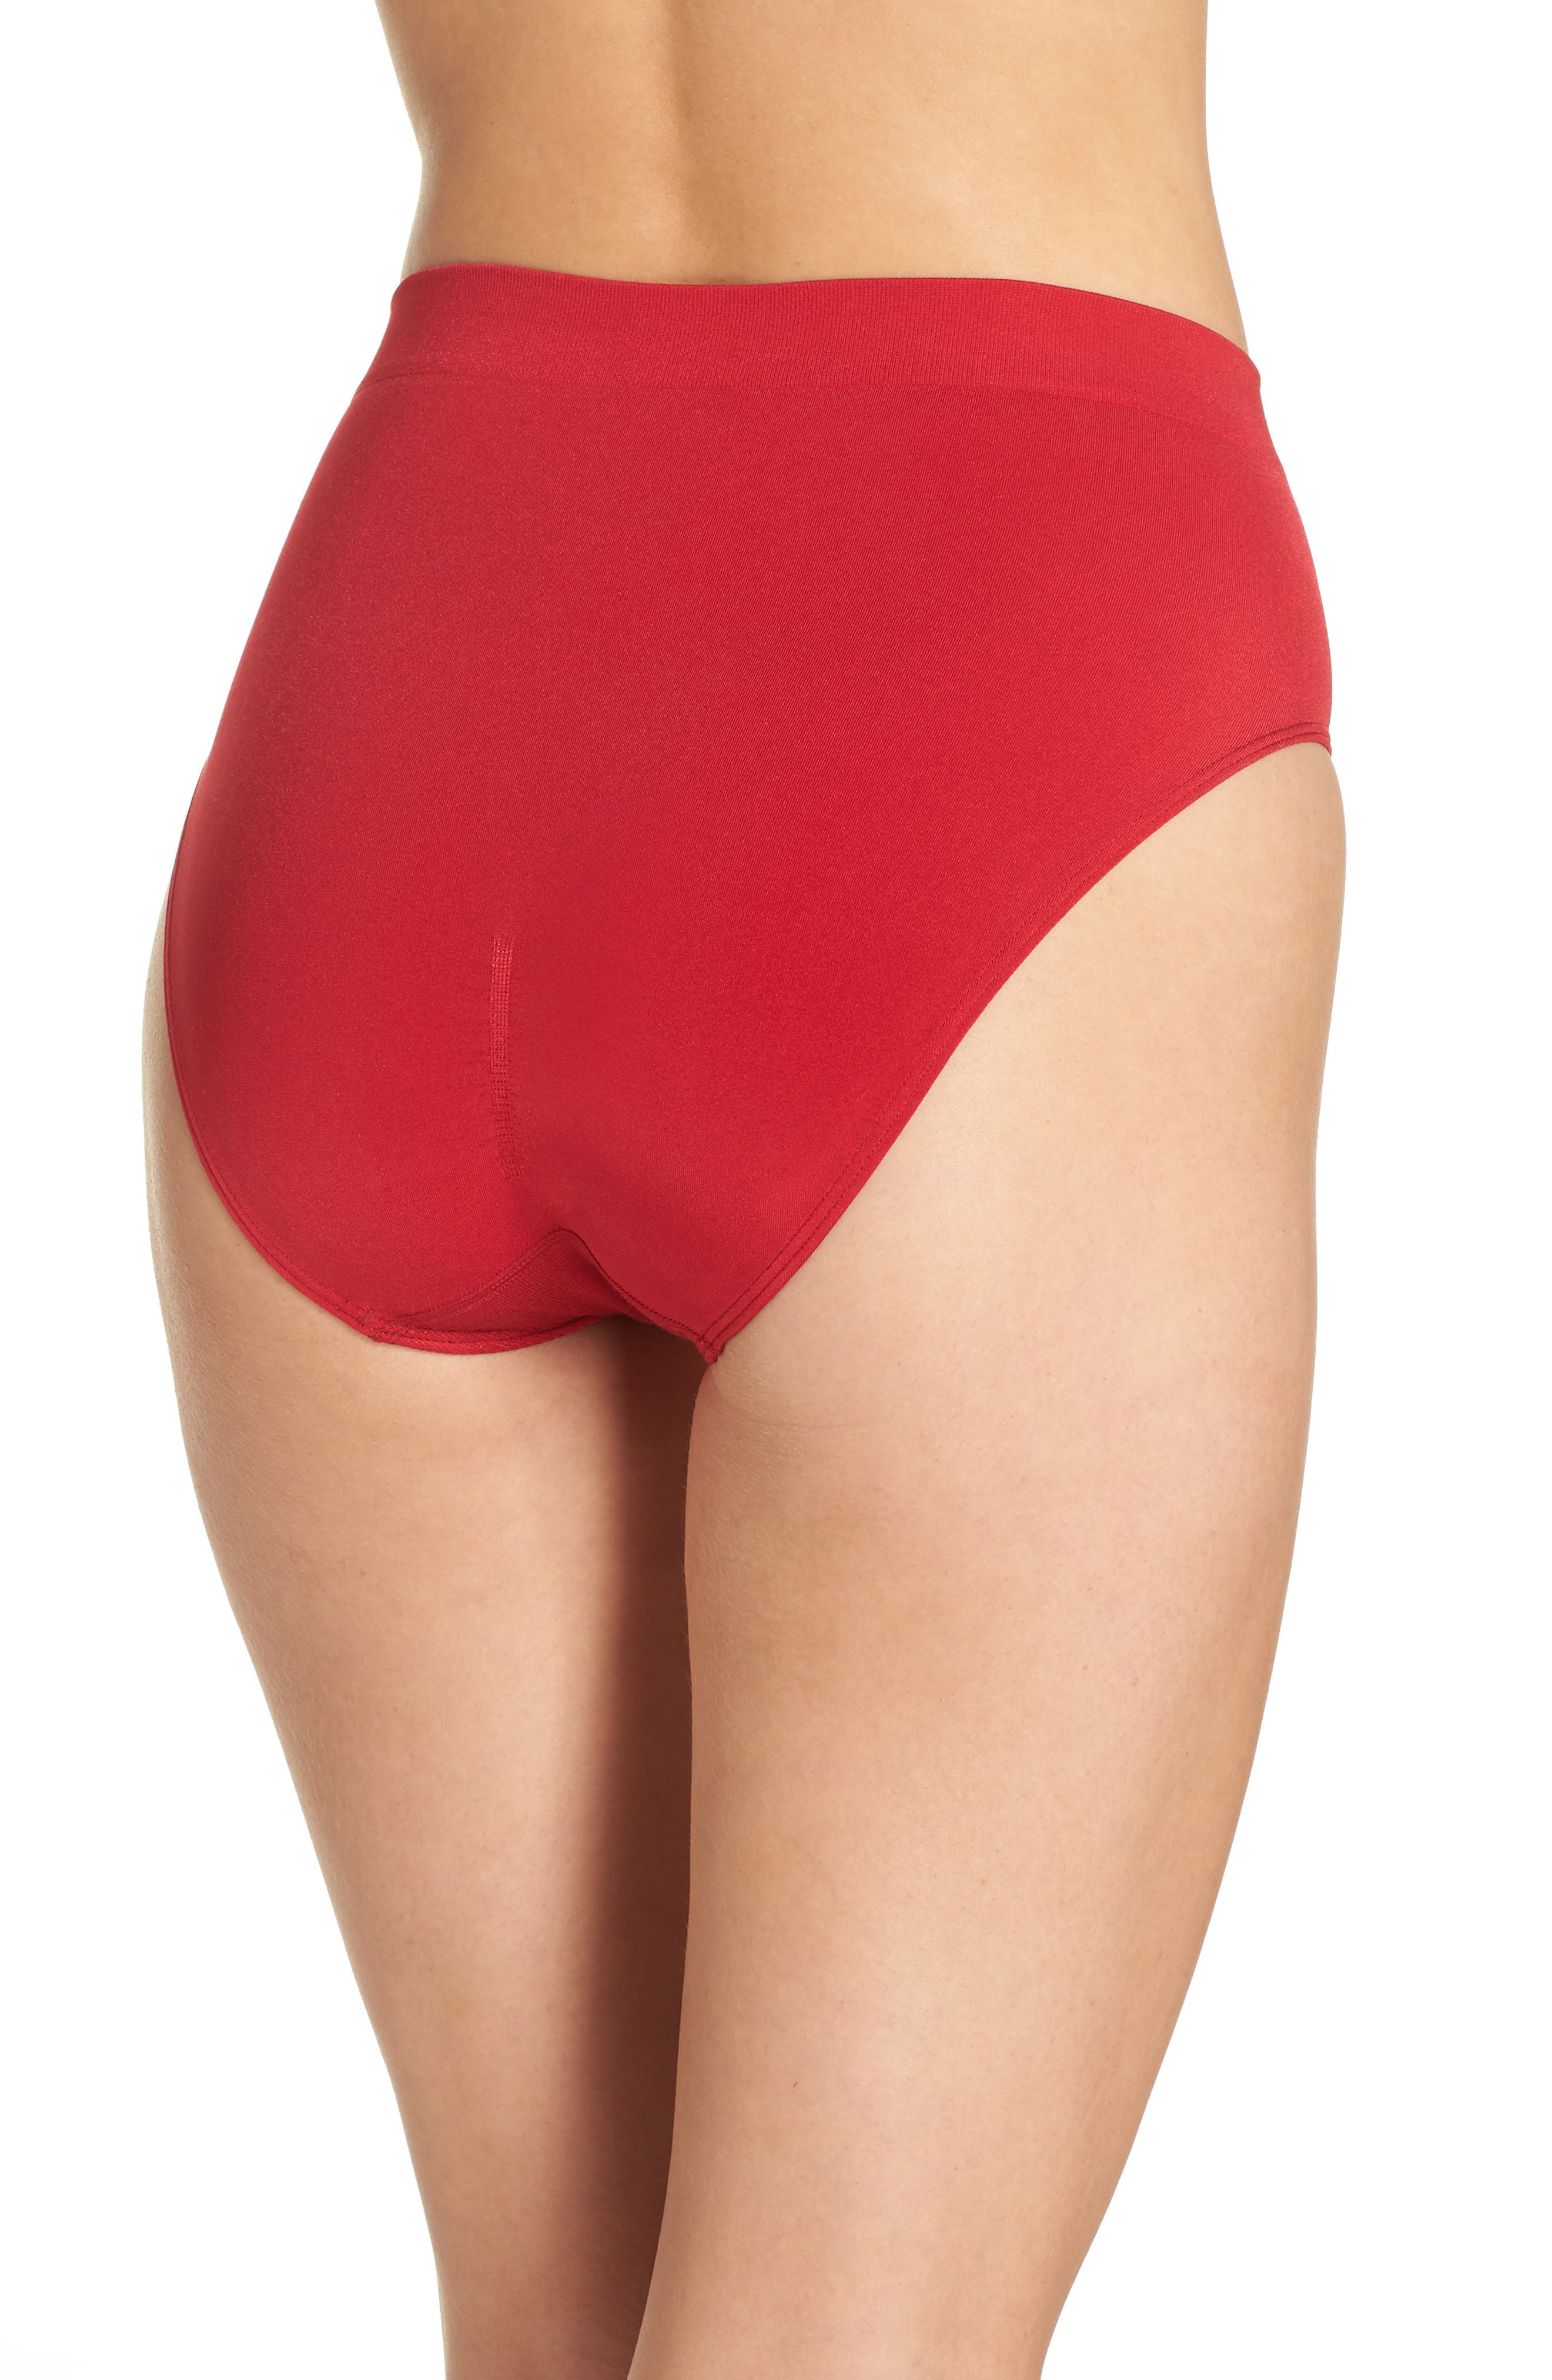 B Smooth High Cut Briefs,                             Alternate thumbnail 2, color,                             JESTER RED